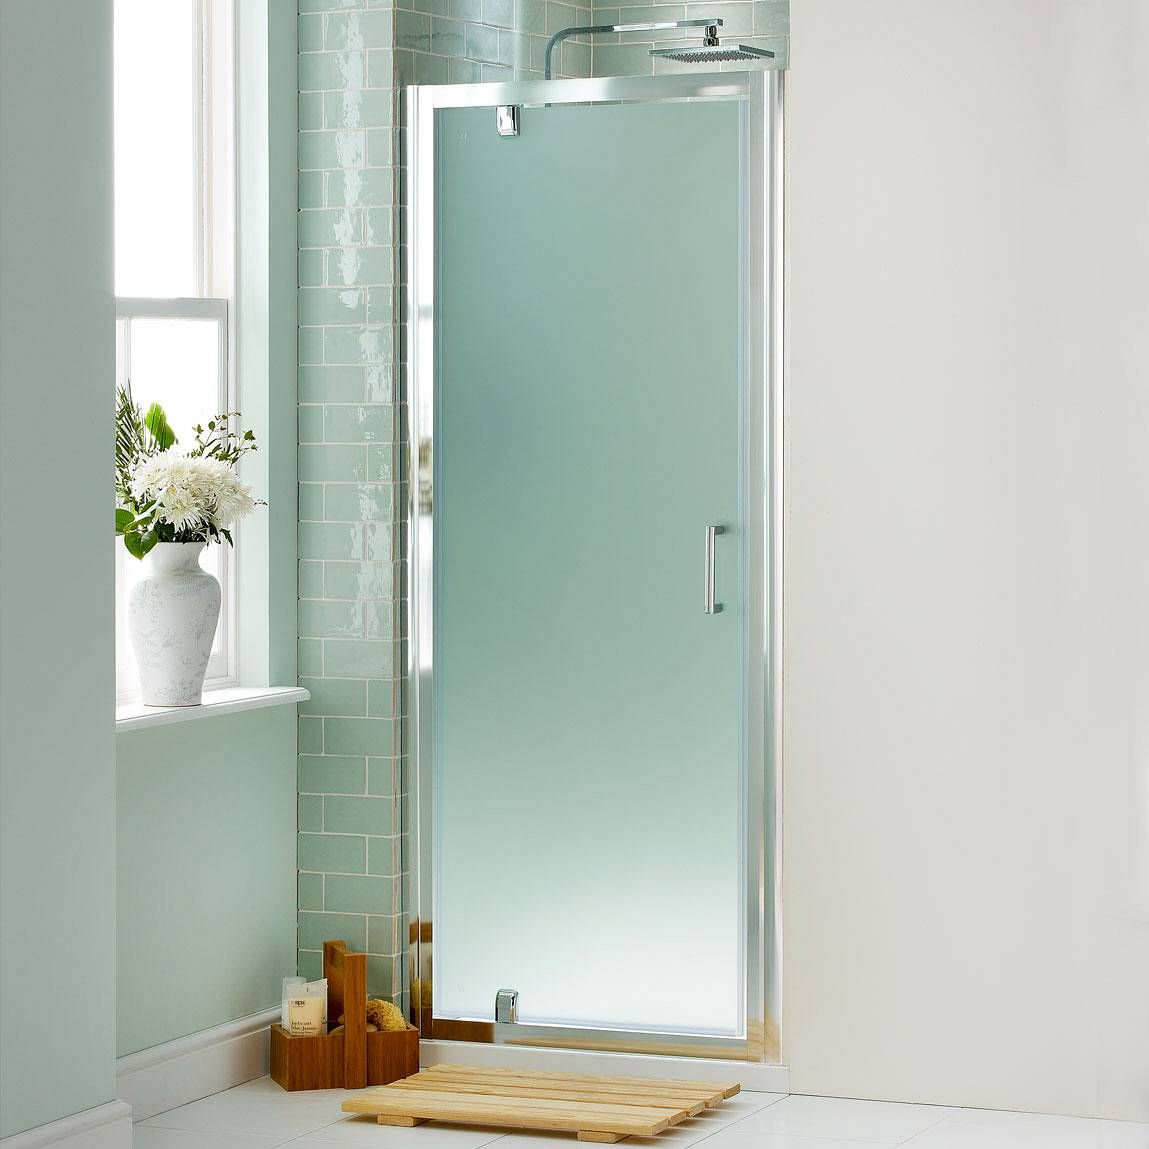 V6 Pivot Frosted Glass Shower Door 800 As A Replacement Door To My